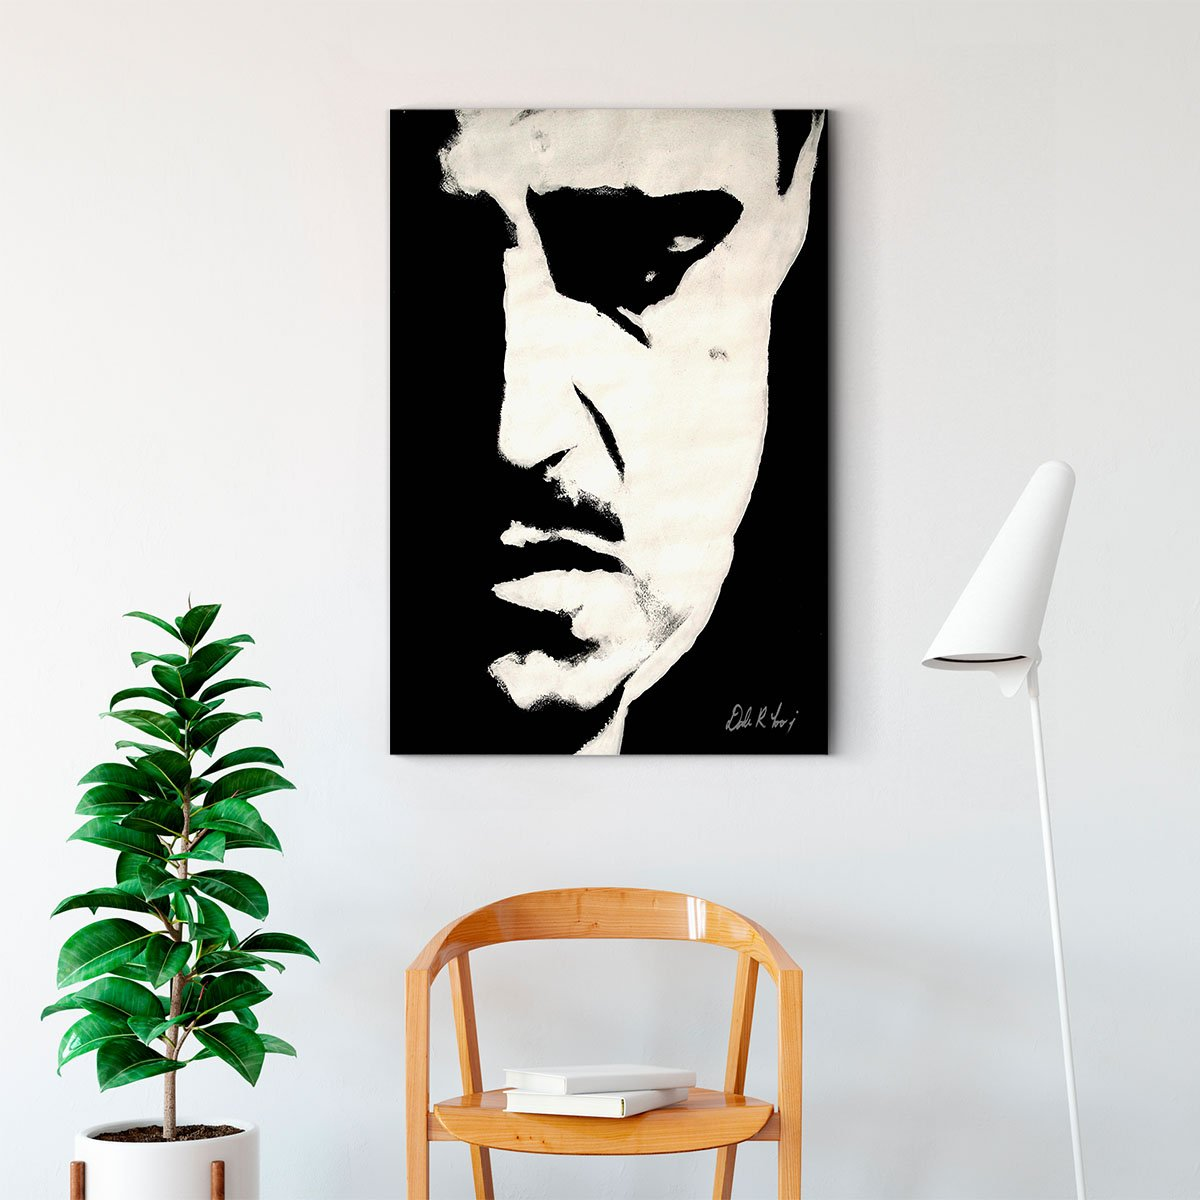 Marlon Brando The God Father black and white decorative painting 021